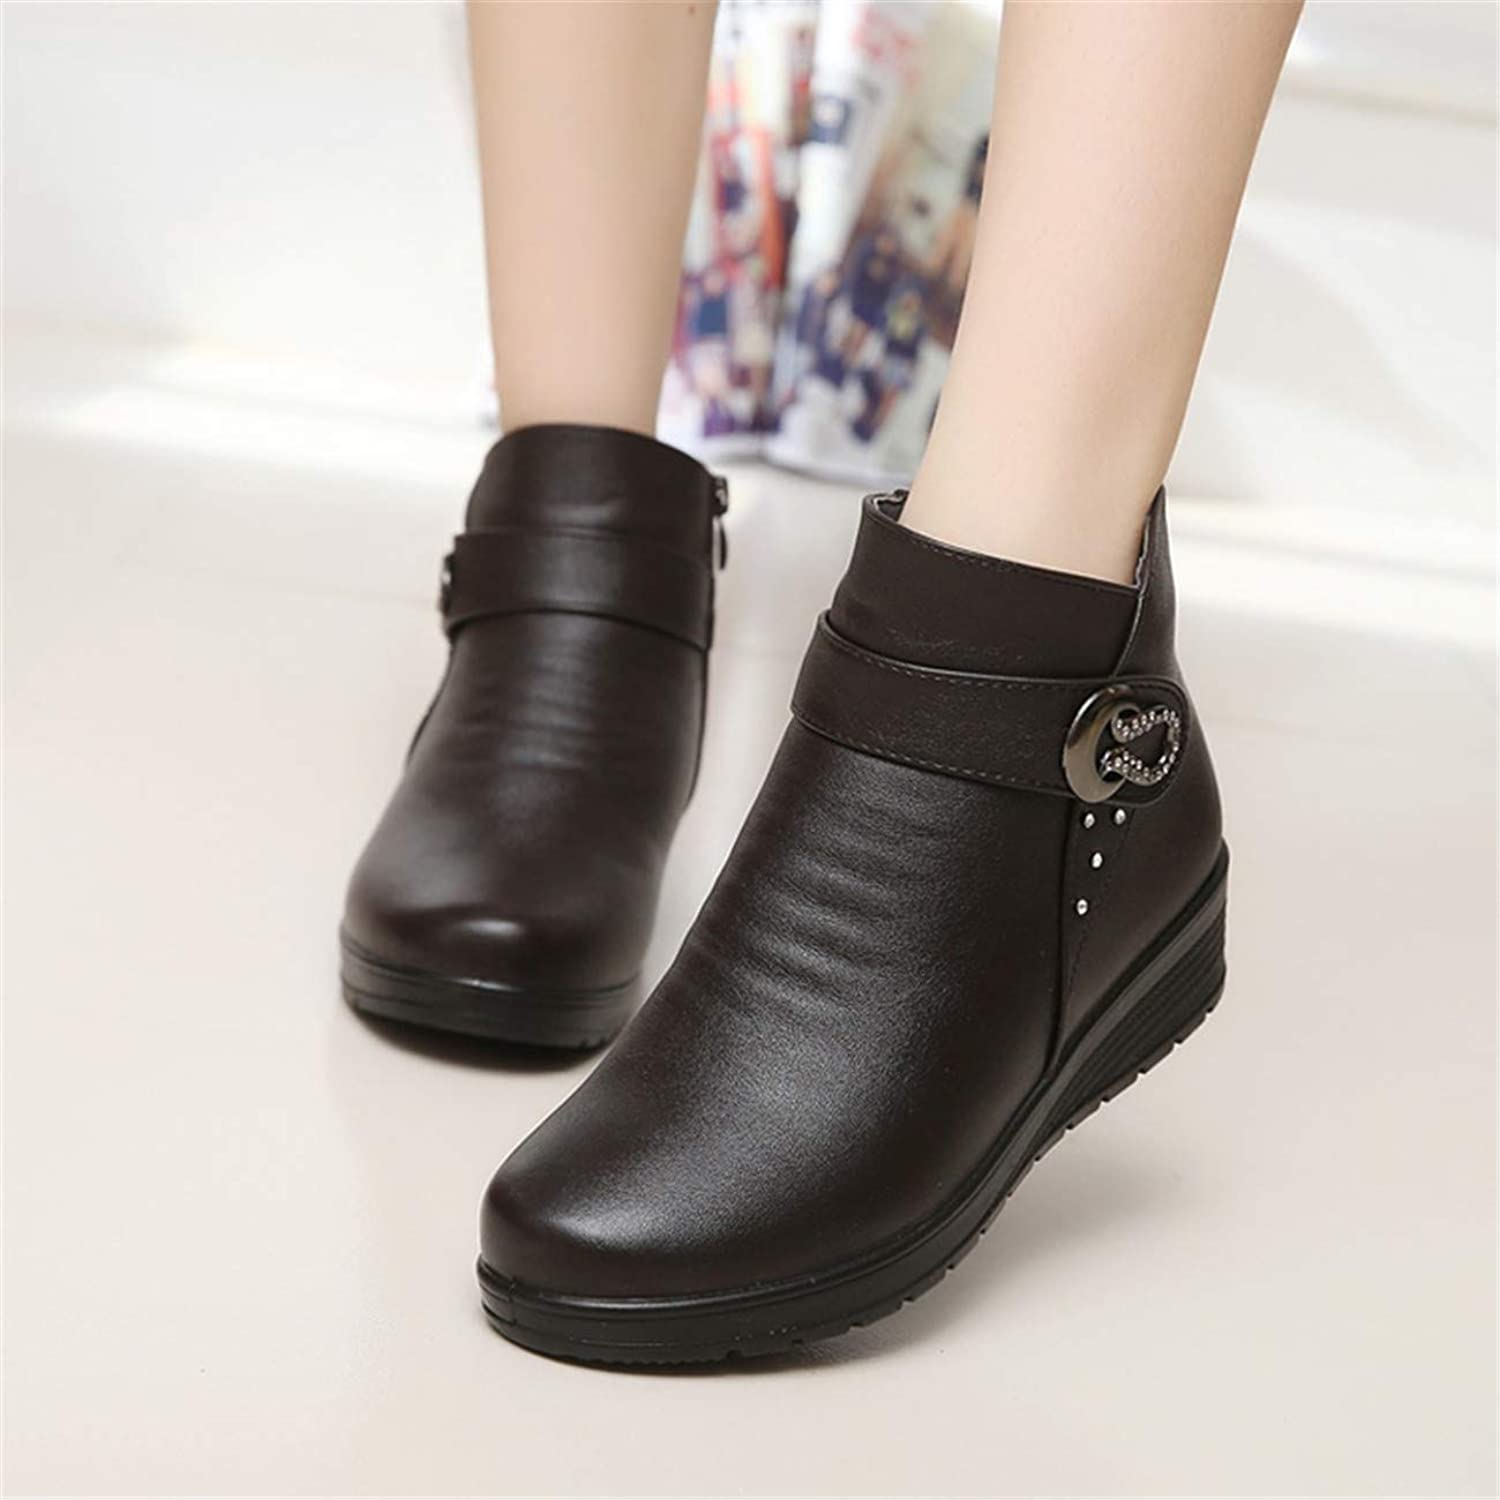 HCHBE& Cute Cat Warm Boots Women Family Christmas Cotton Winter shoes Women Boot